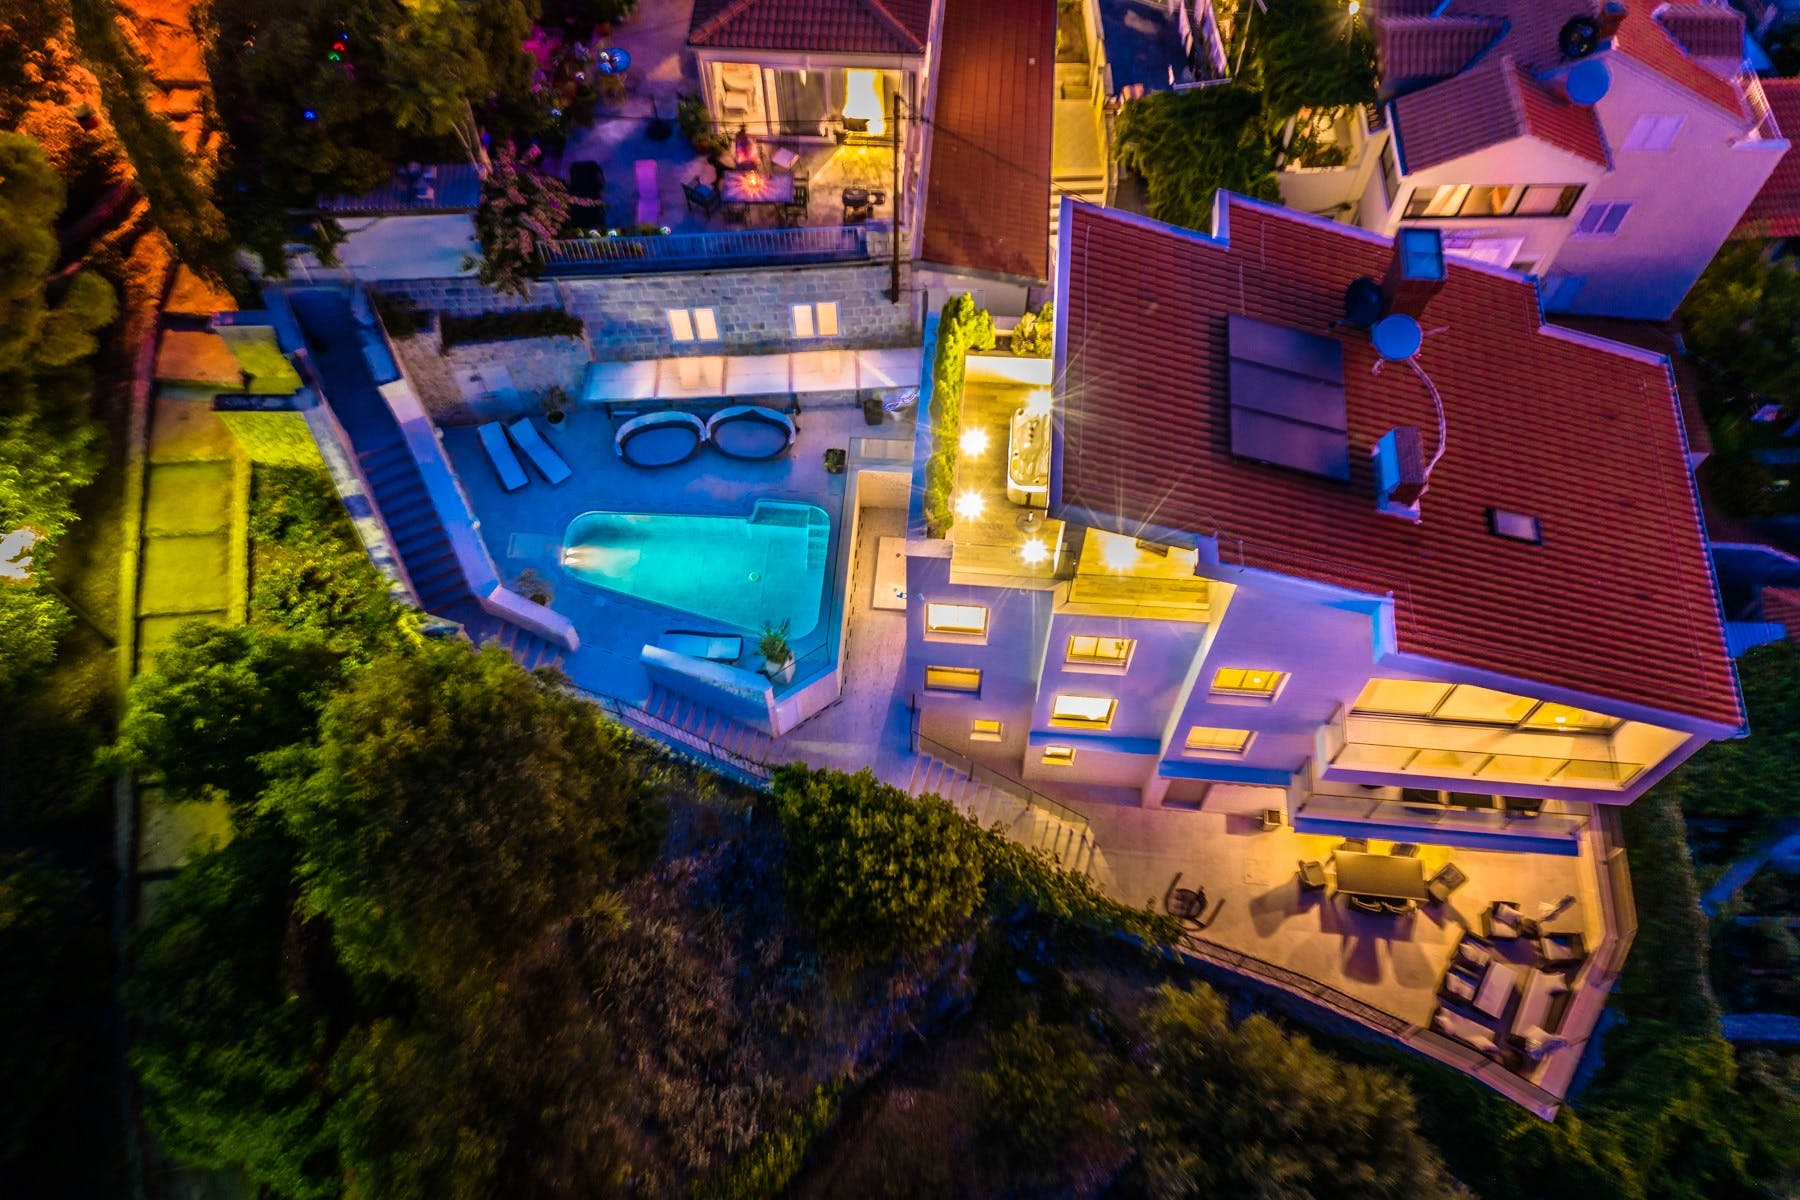 Night ambiance of the luxurious villa in Dubrovnik